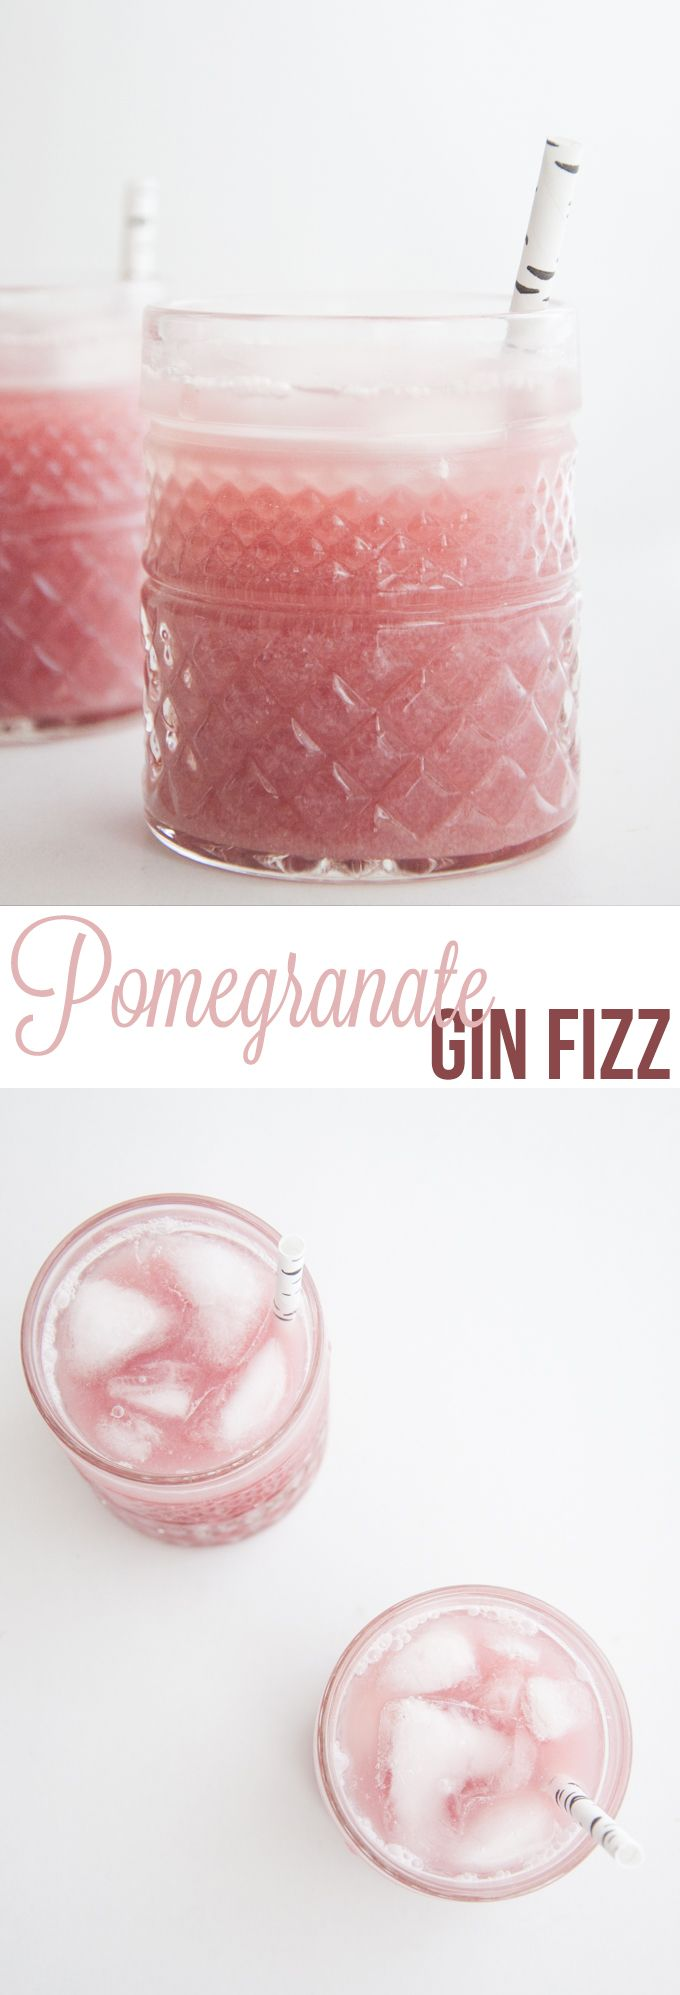 Recipe for a vegan Pomegranate Gin Fizz - made with fresh Pomegranate Seeds! Perfect for parties & date nights!